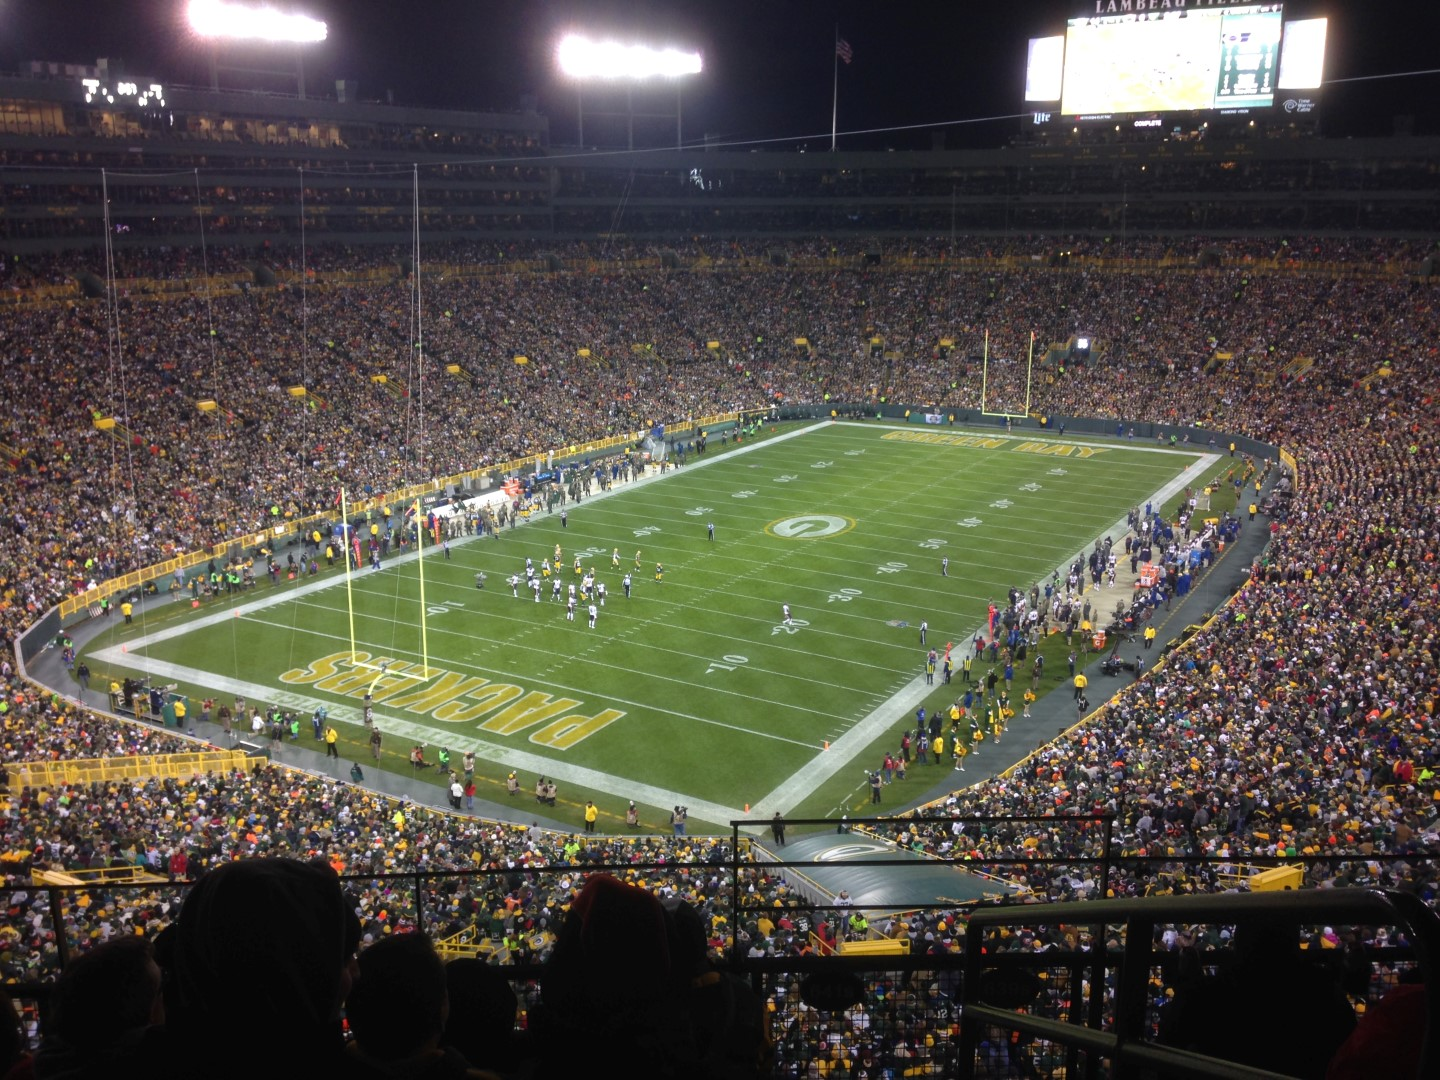 Packers vs. Bears @ Lambeau – Nov 10, 2014